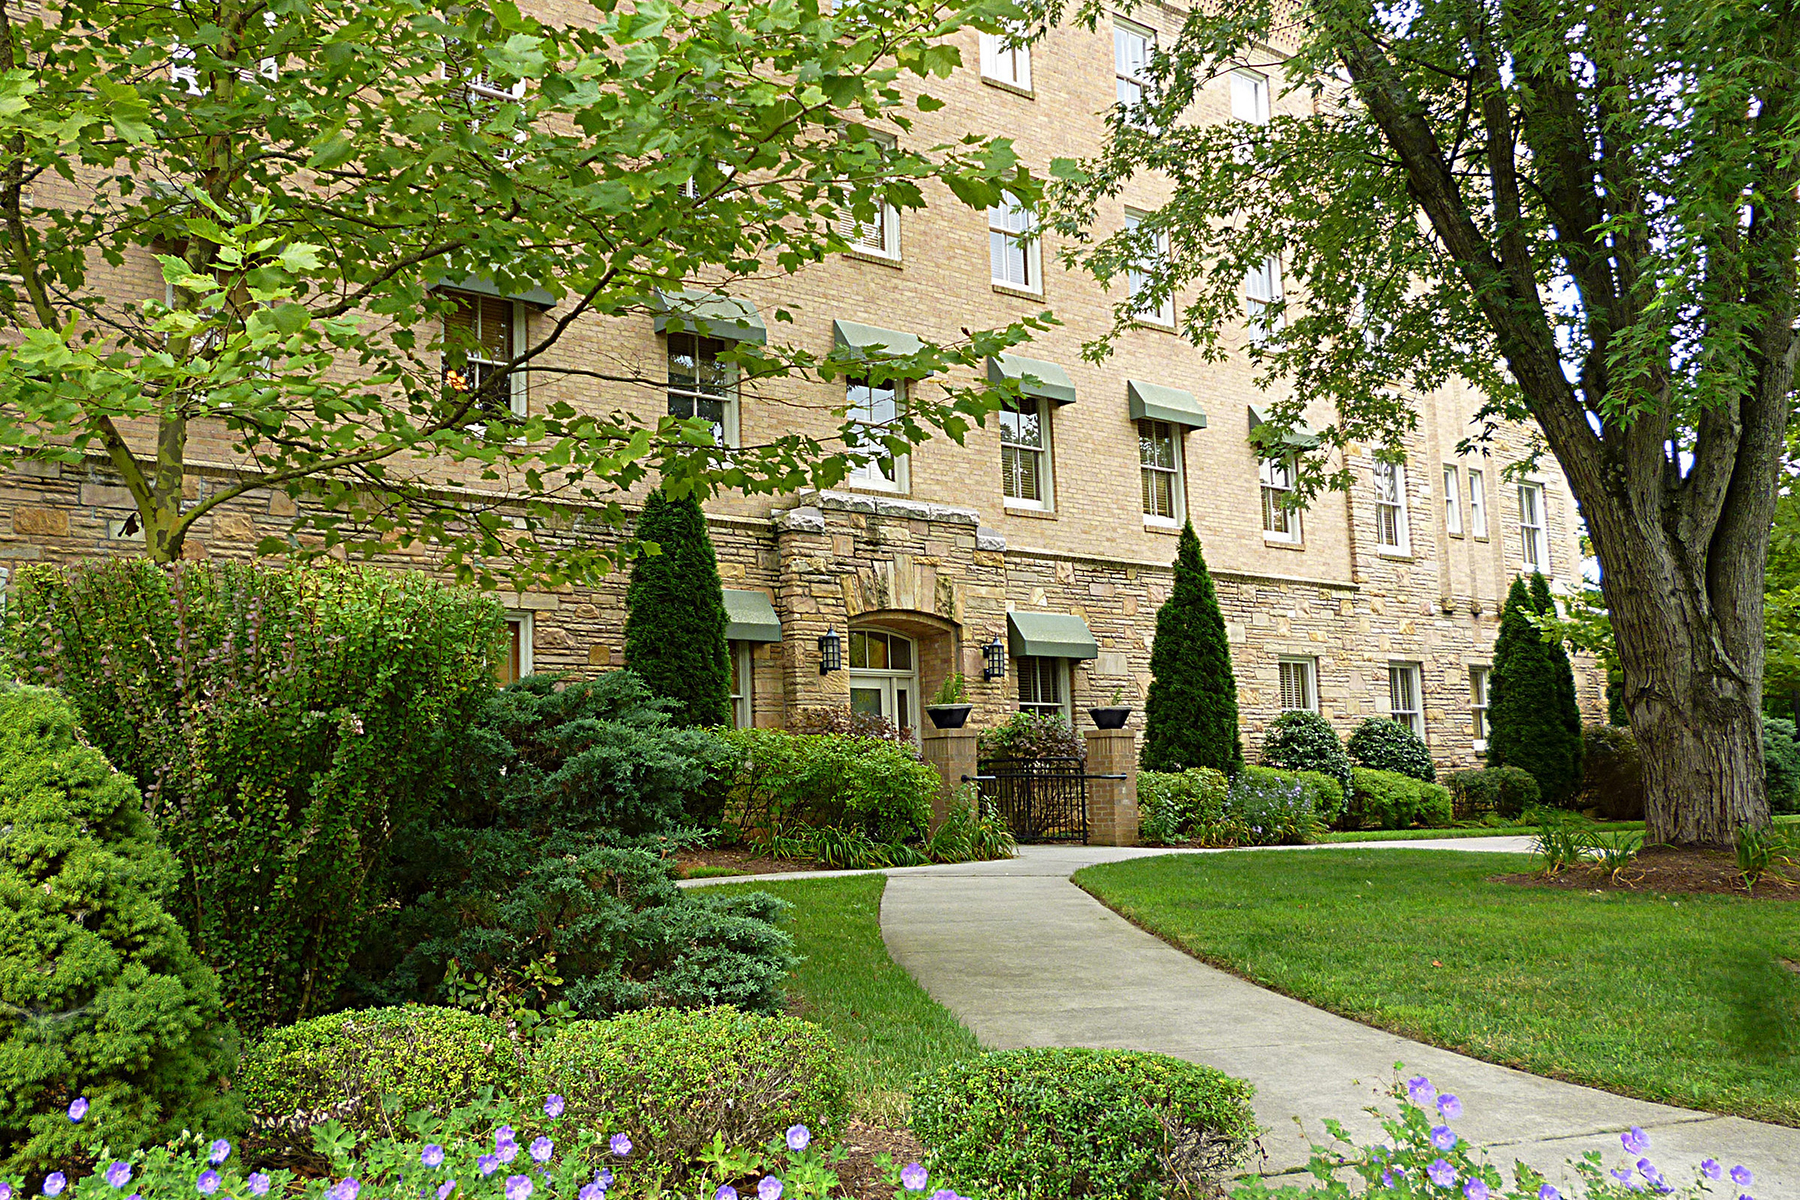 Multi-Family Home for Sale at HISTORIC BILTMORE VILLAGE CONDO COMPLEX 8 Village Ln, Asheville, North Carolina 28803 United States